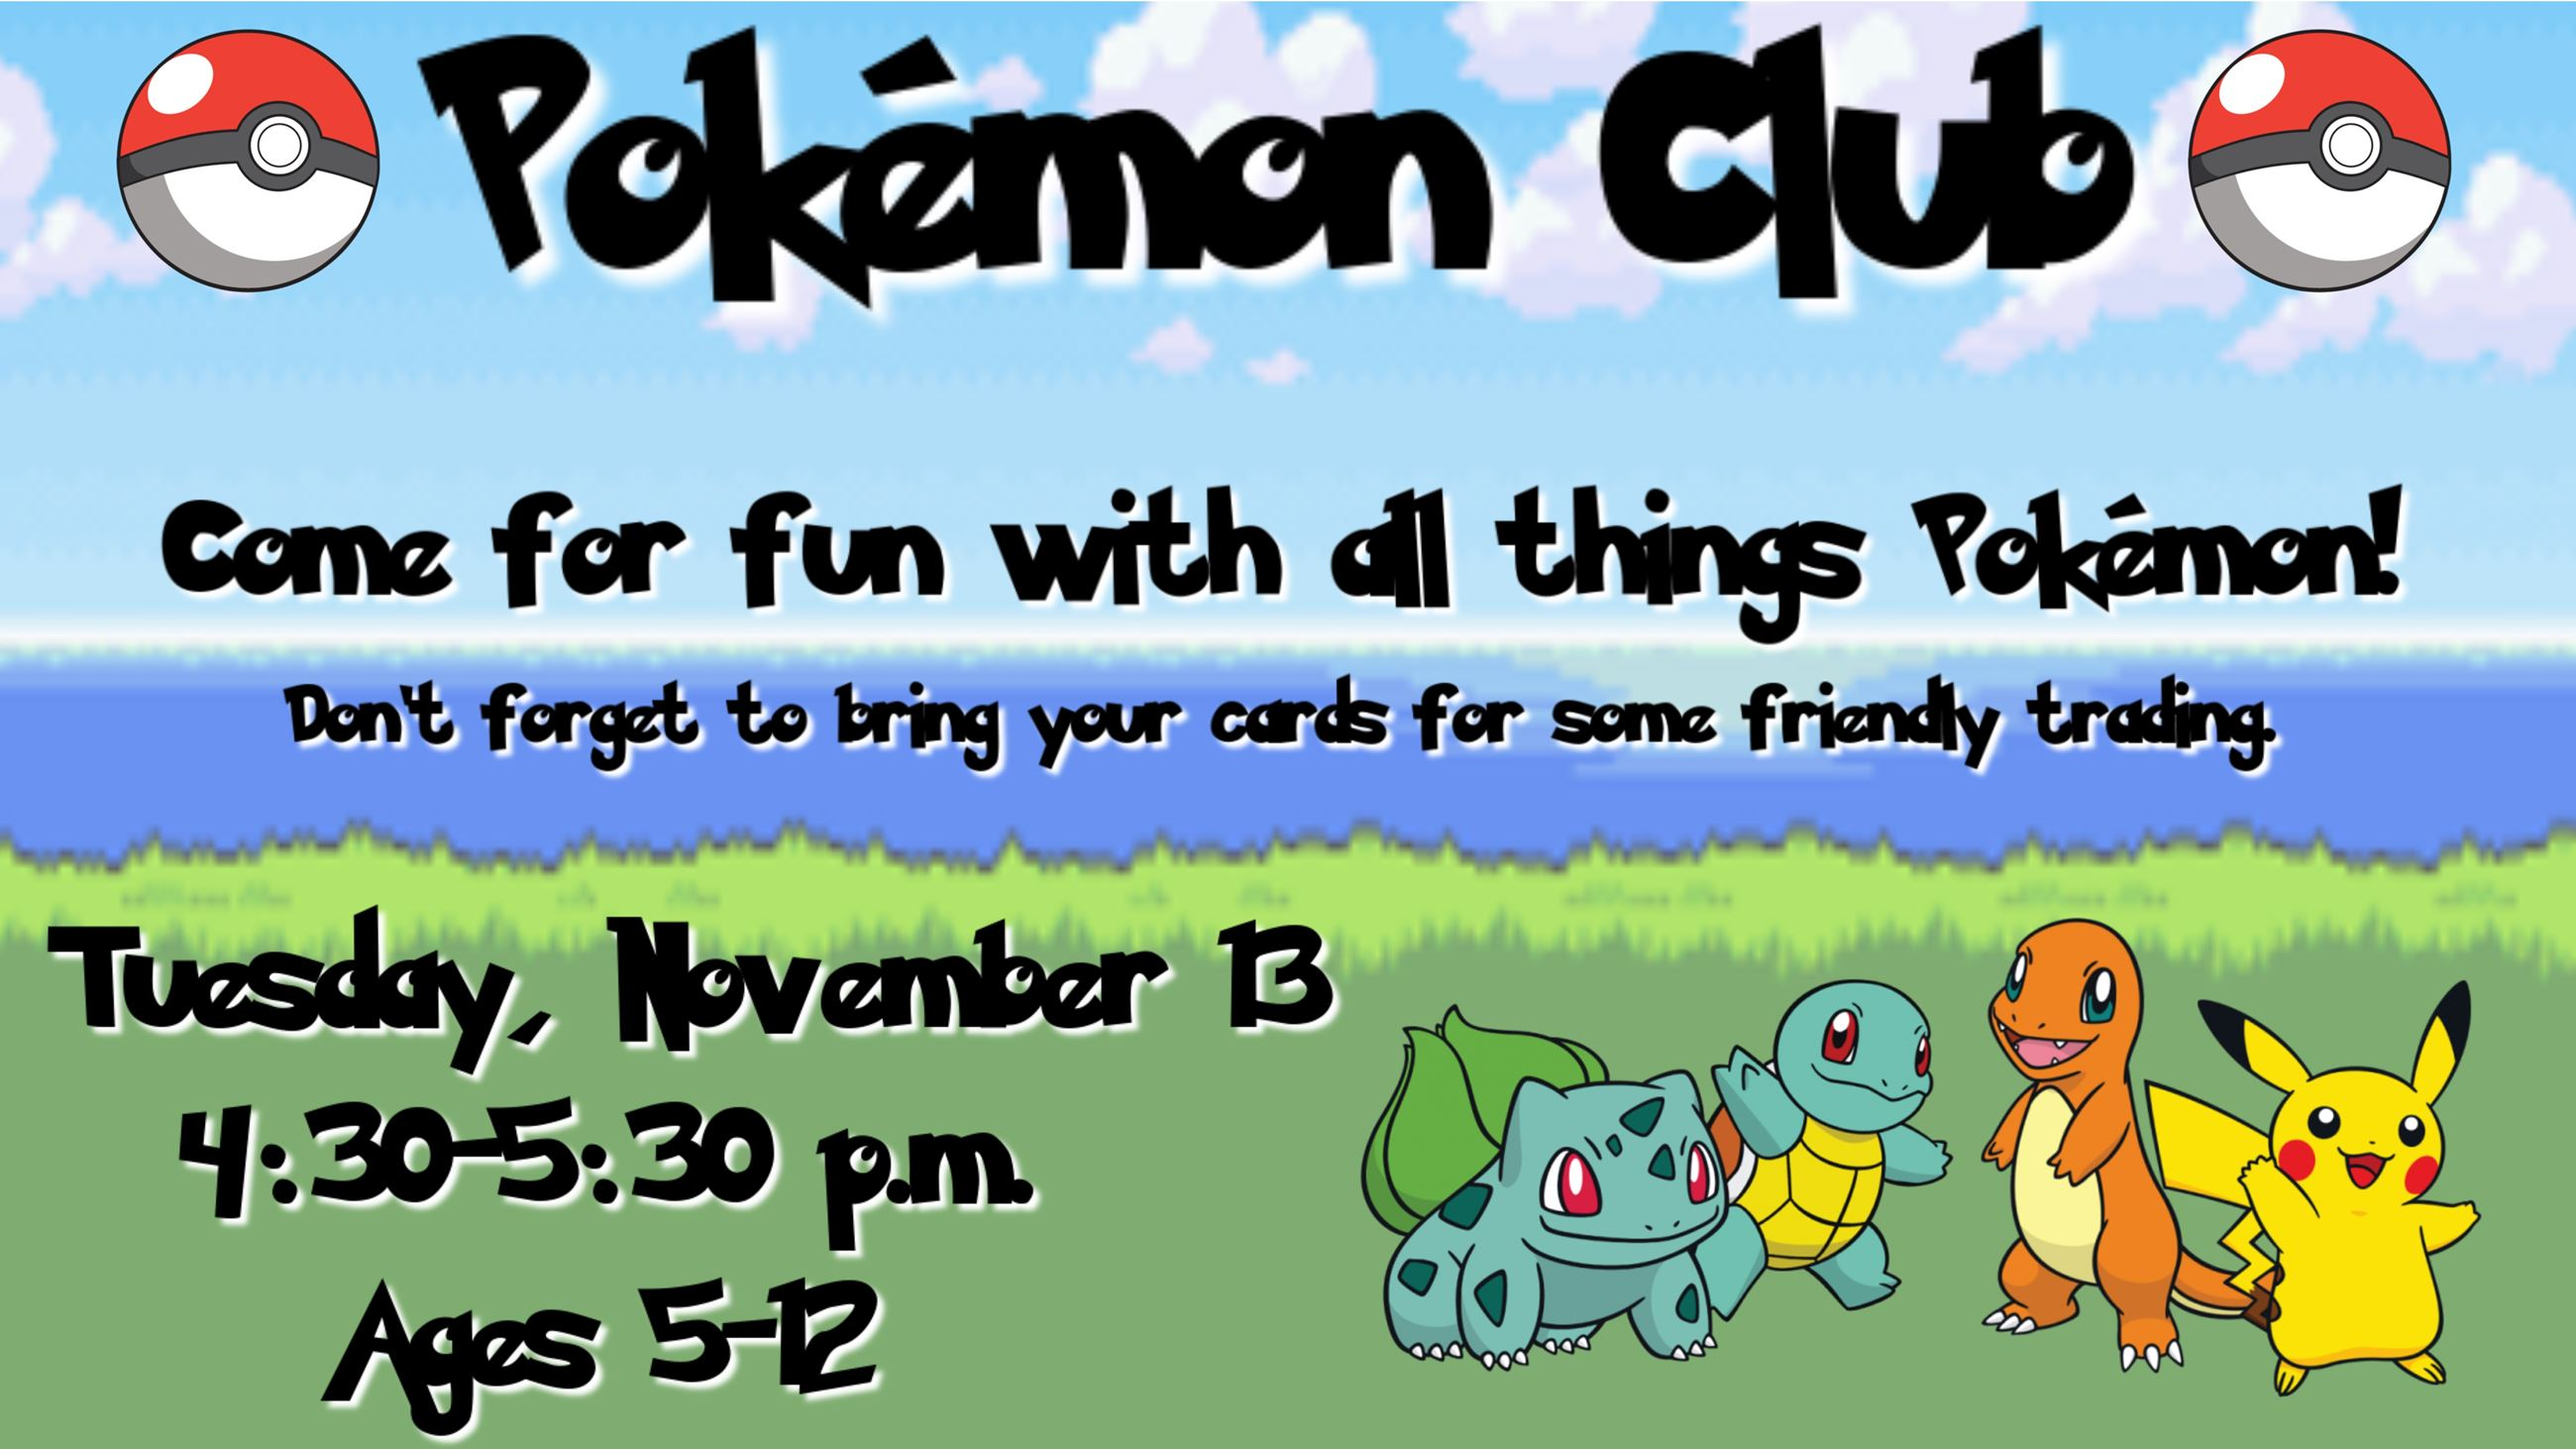 Pokemon Club. November 13 from 4:30 to 5:30 p.m. Ages 5 to 12. Come for fun with all thing Pokemon.